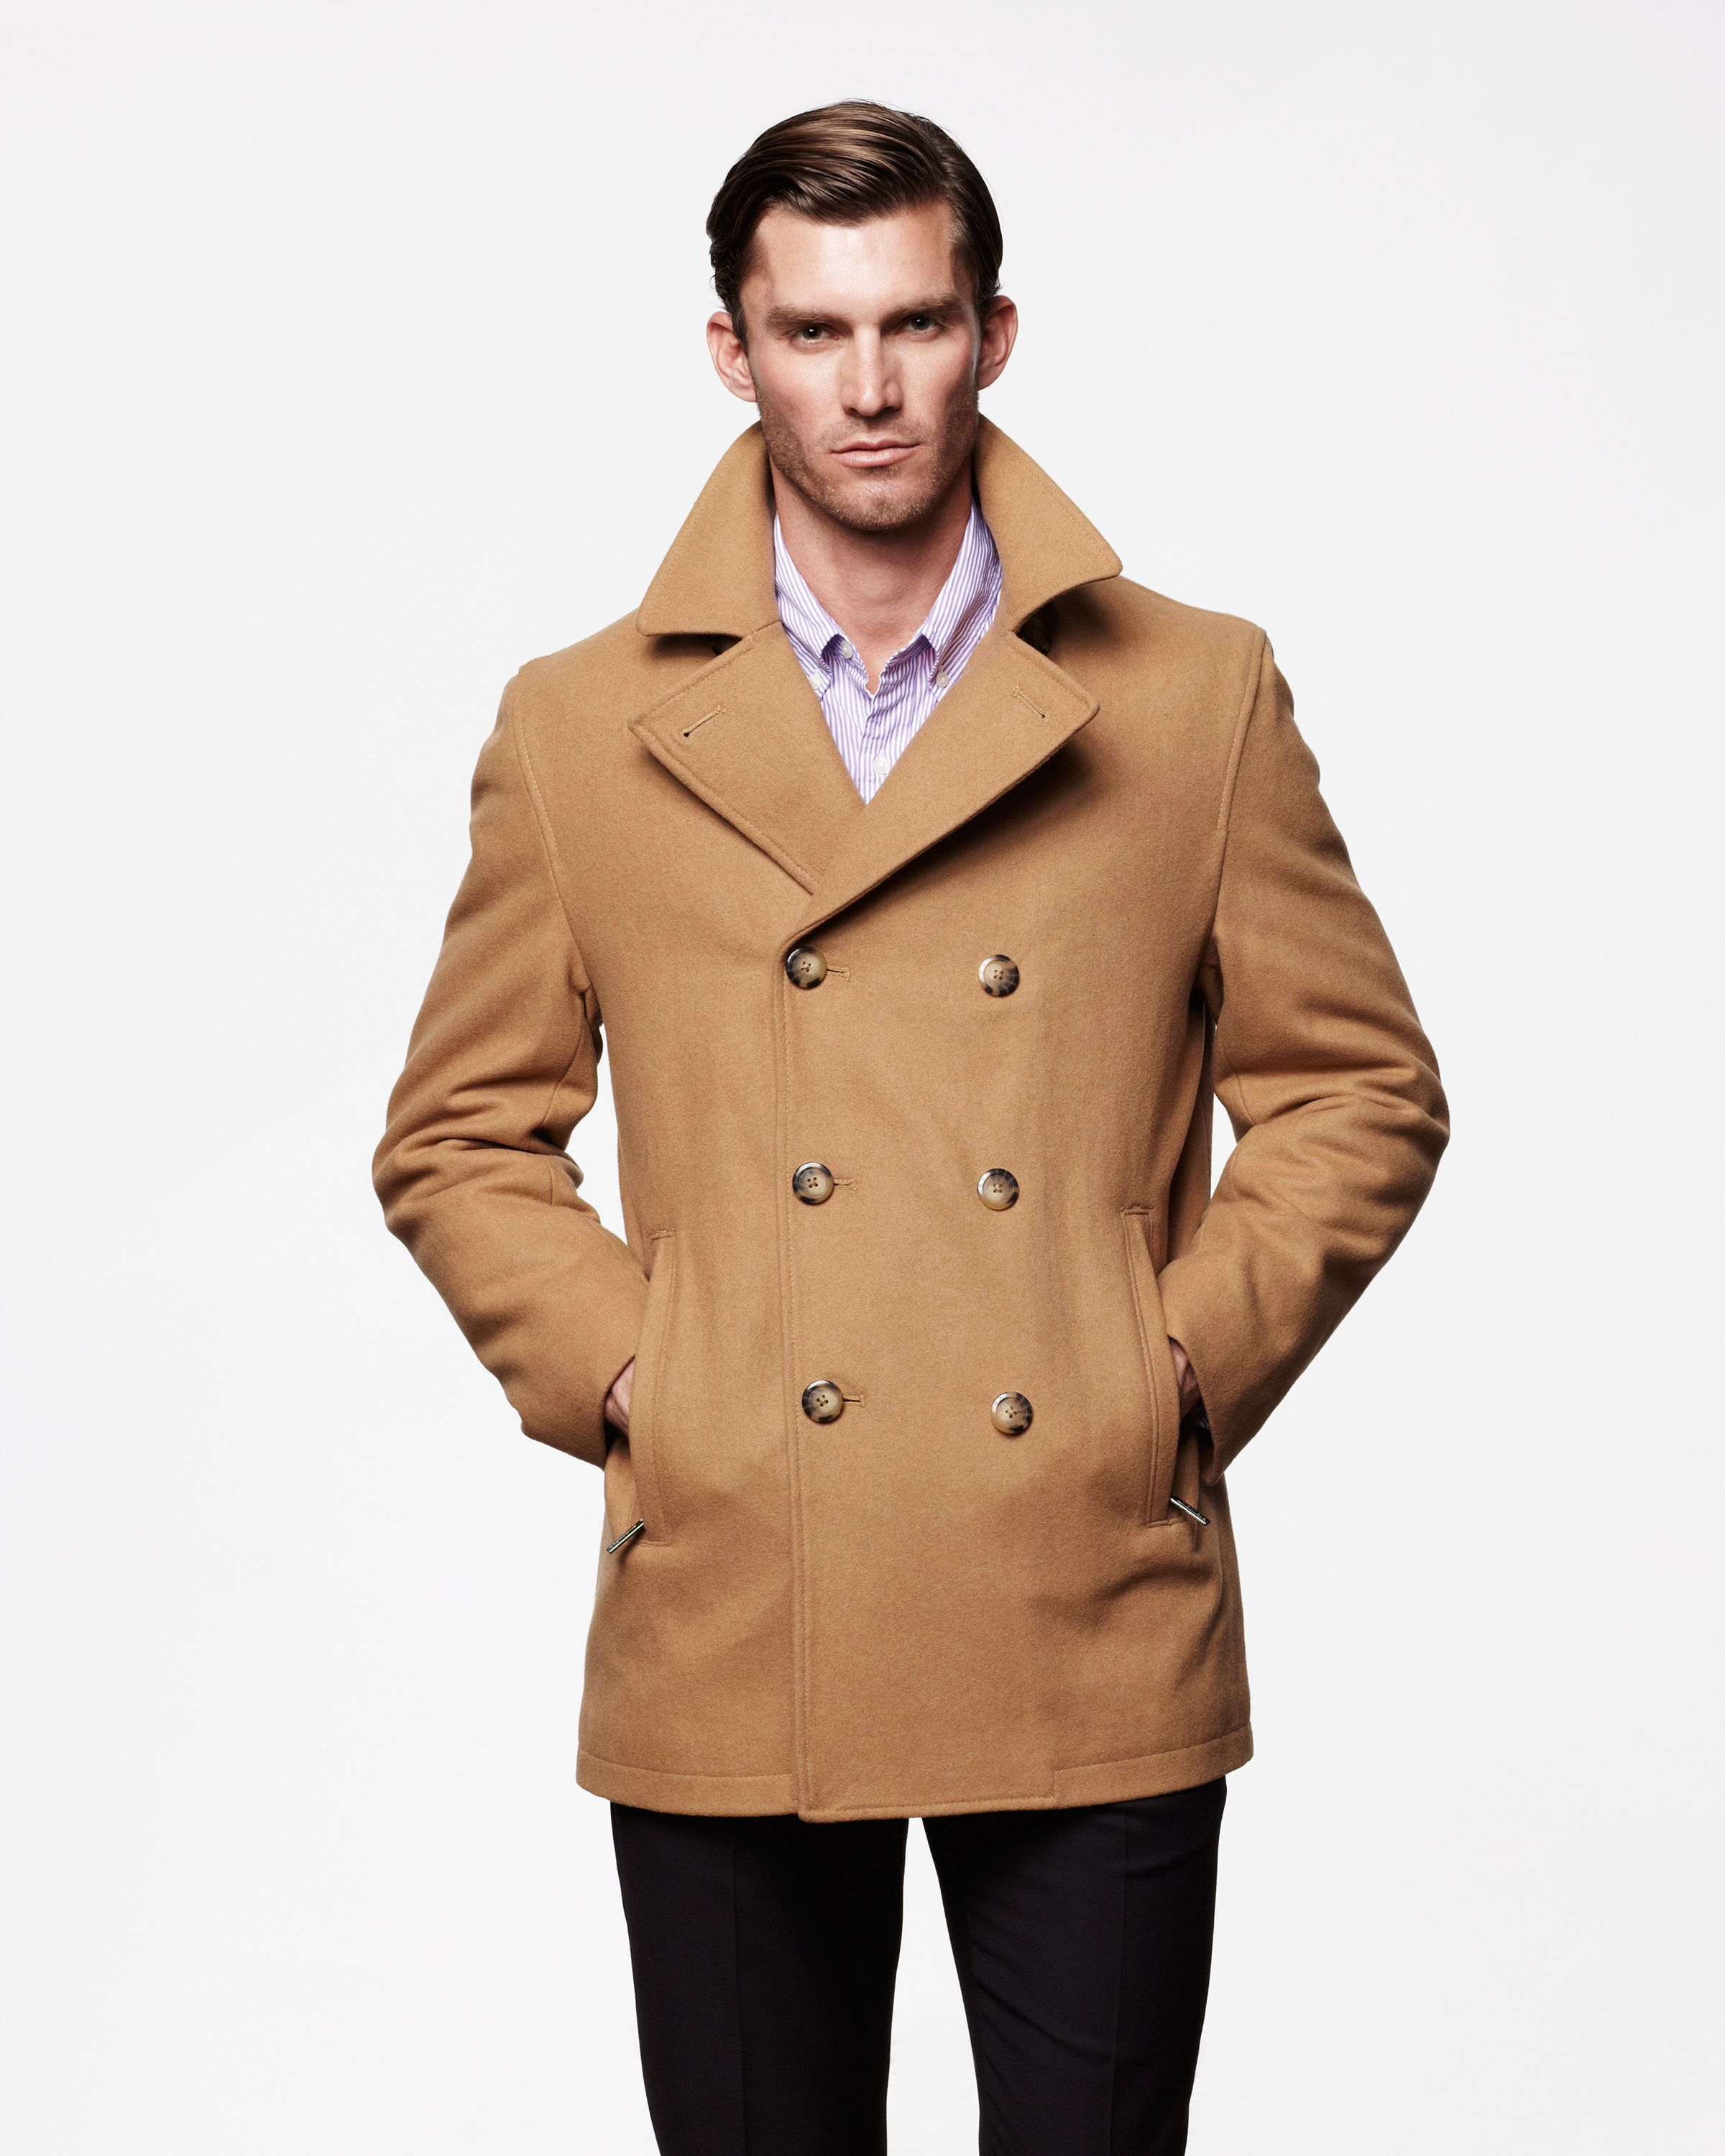 Collection Mens Tan Peacoat Pictures - Reikian